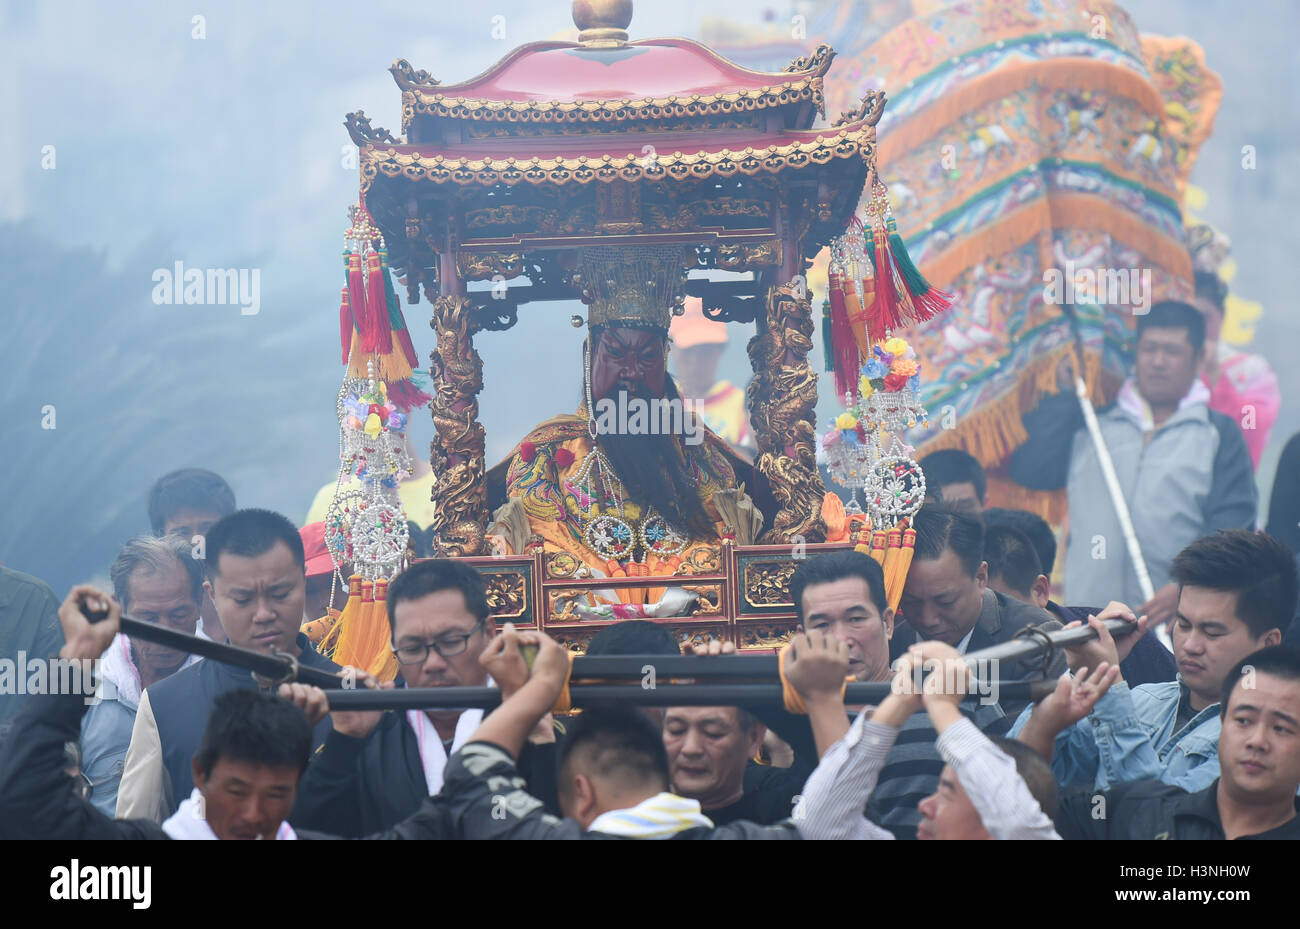 Dongshan, China. 11th October, 2016. Worshippers escort the statue of Guandi to southeast China's Taiwan, in - Stock Image